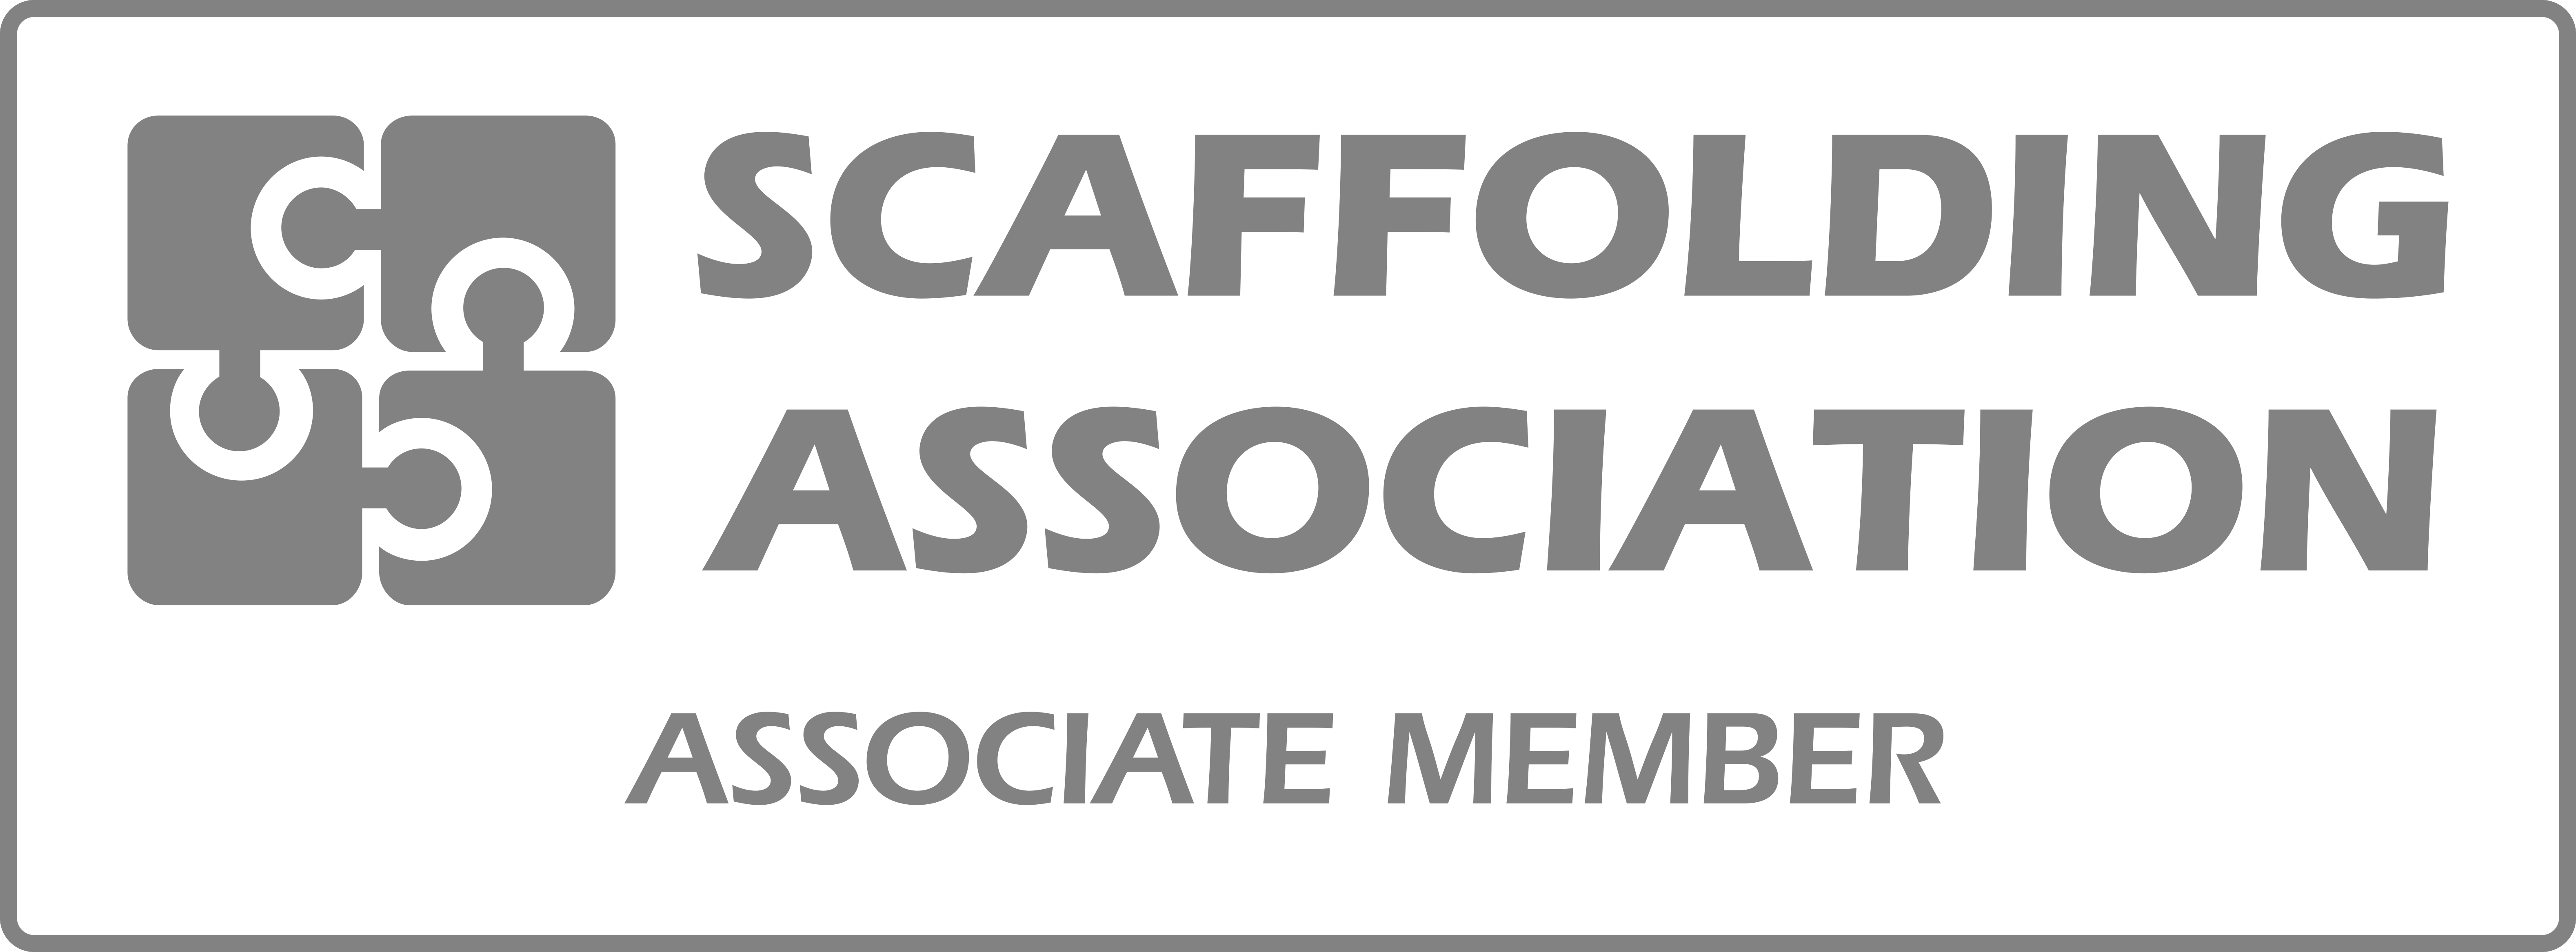 Scaffold Association Associate Member logo